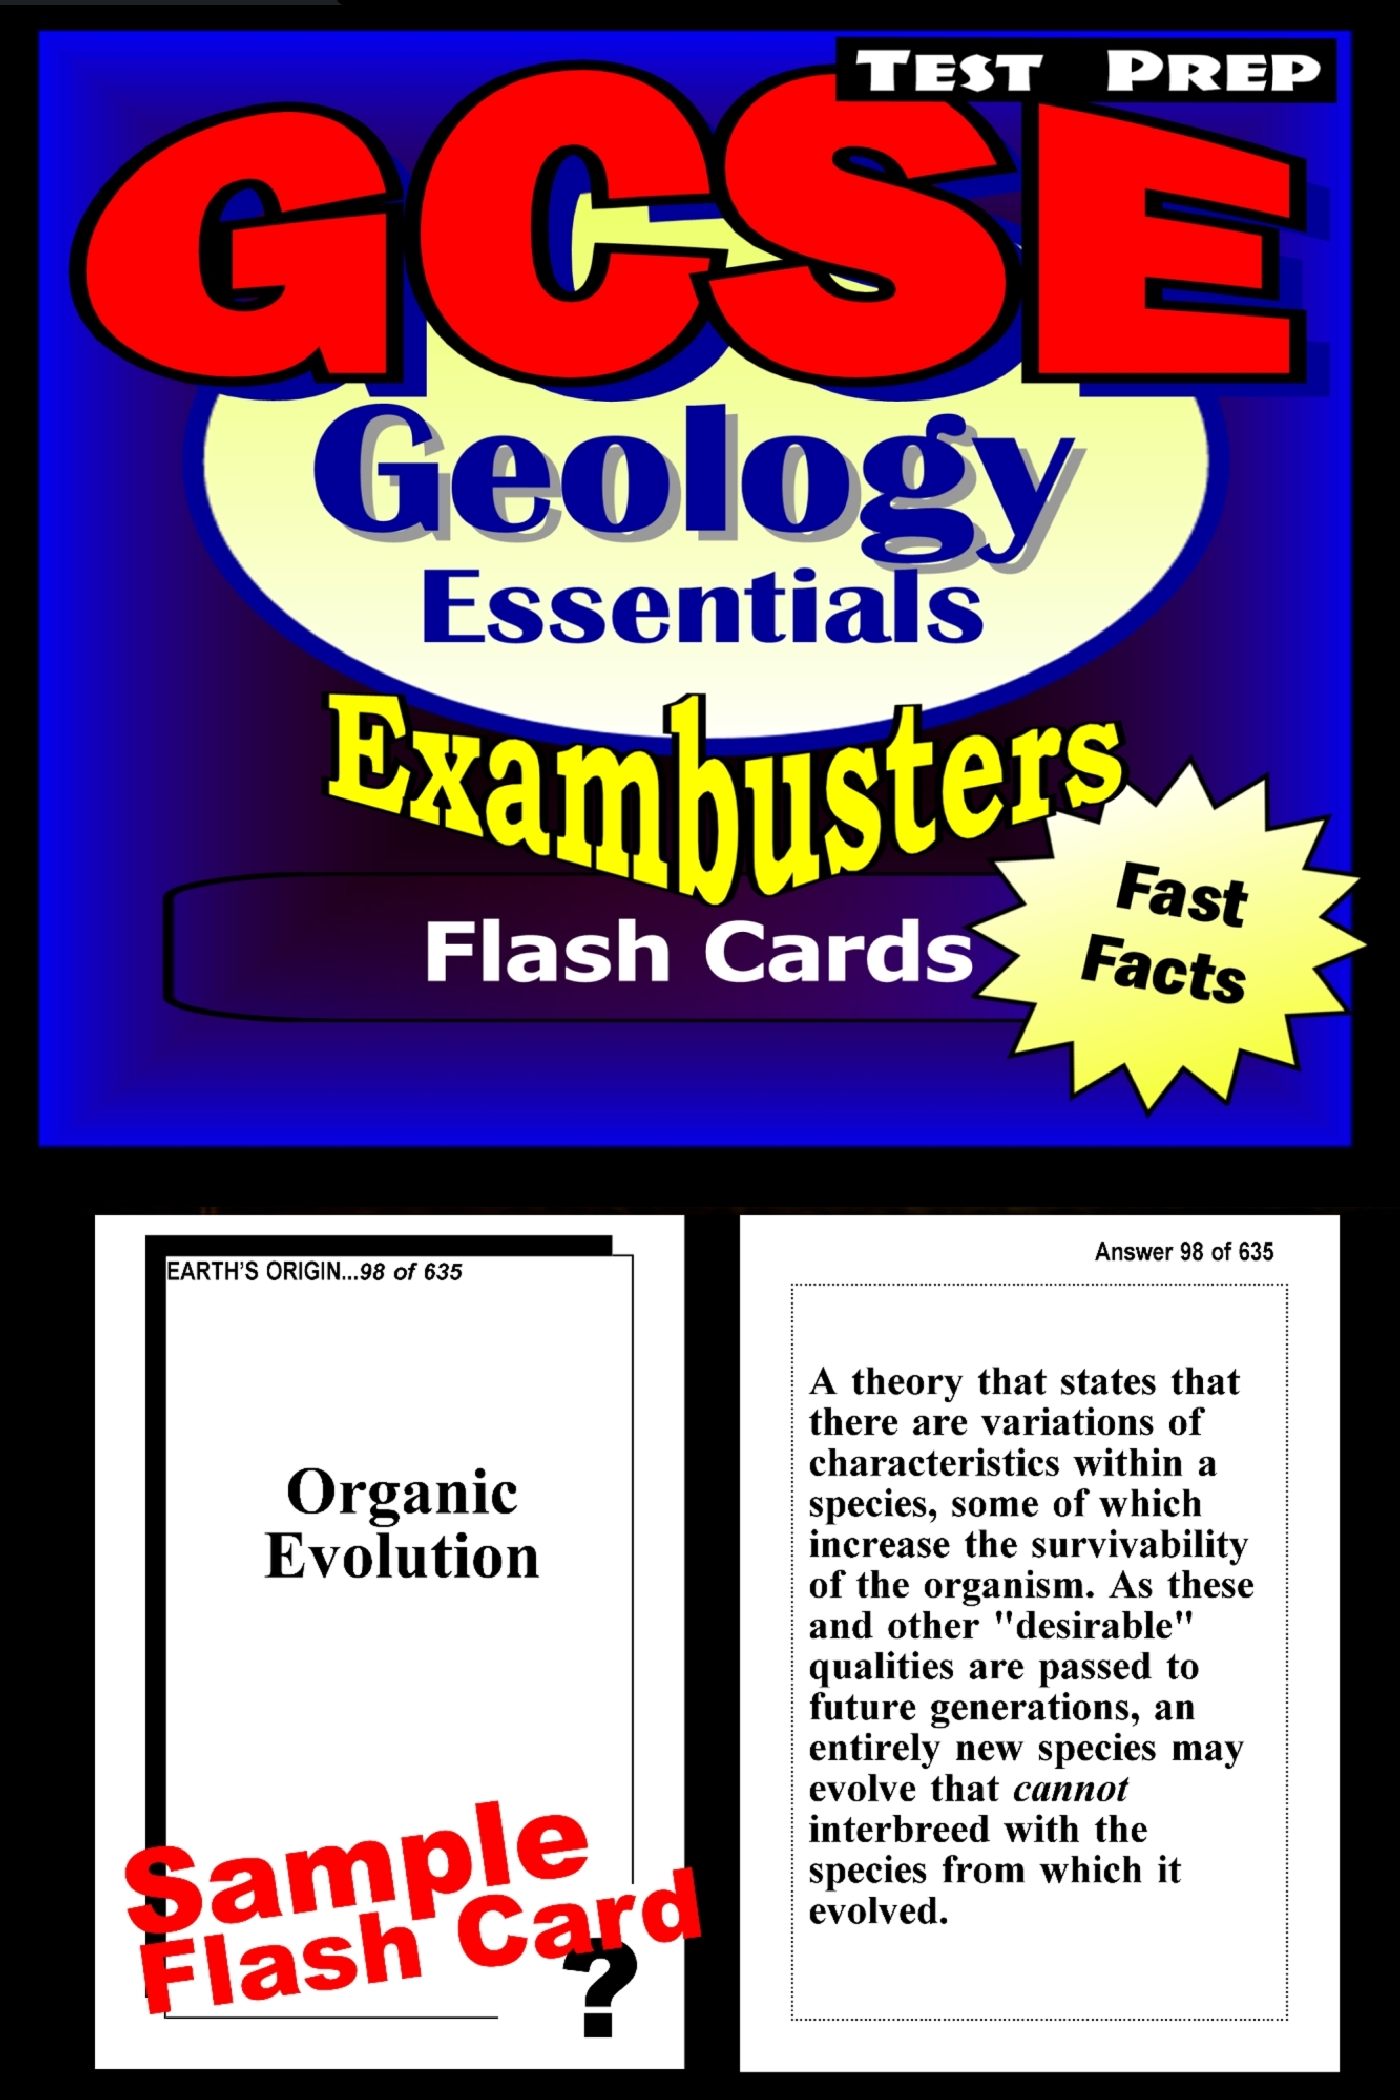 GCSE Geology Test Prep Review--Exambusters Flash Cards: GCSE Exam Study Guide